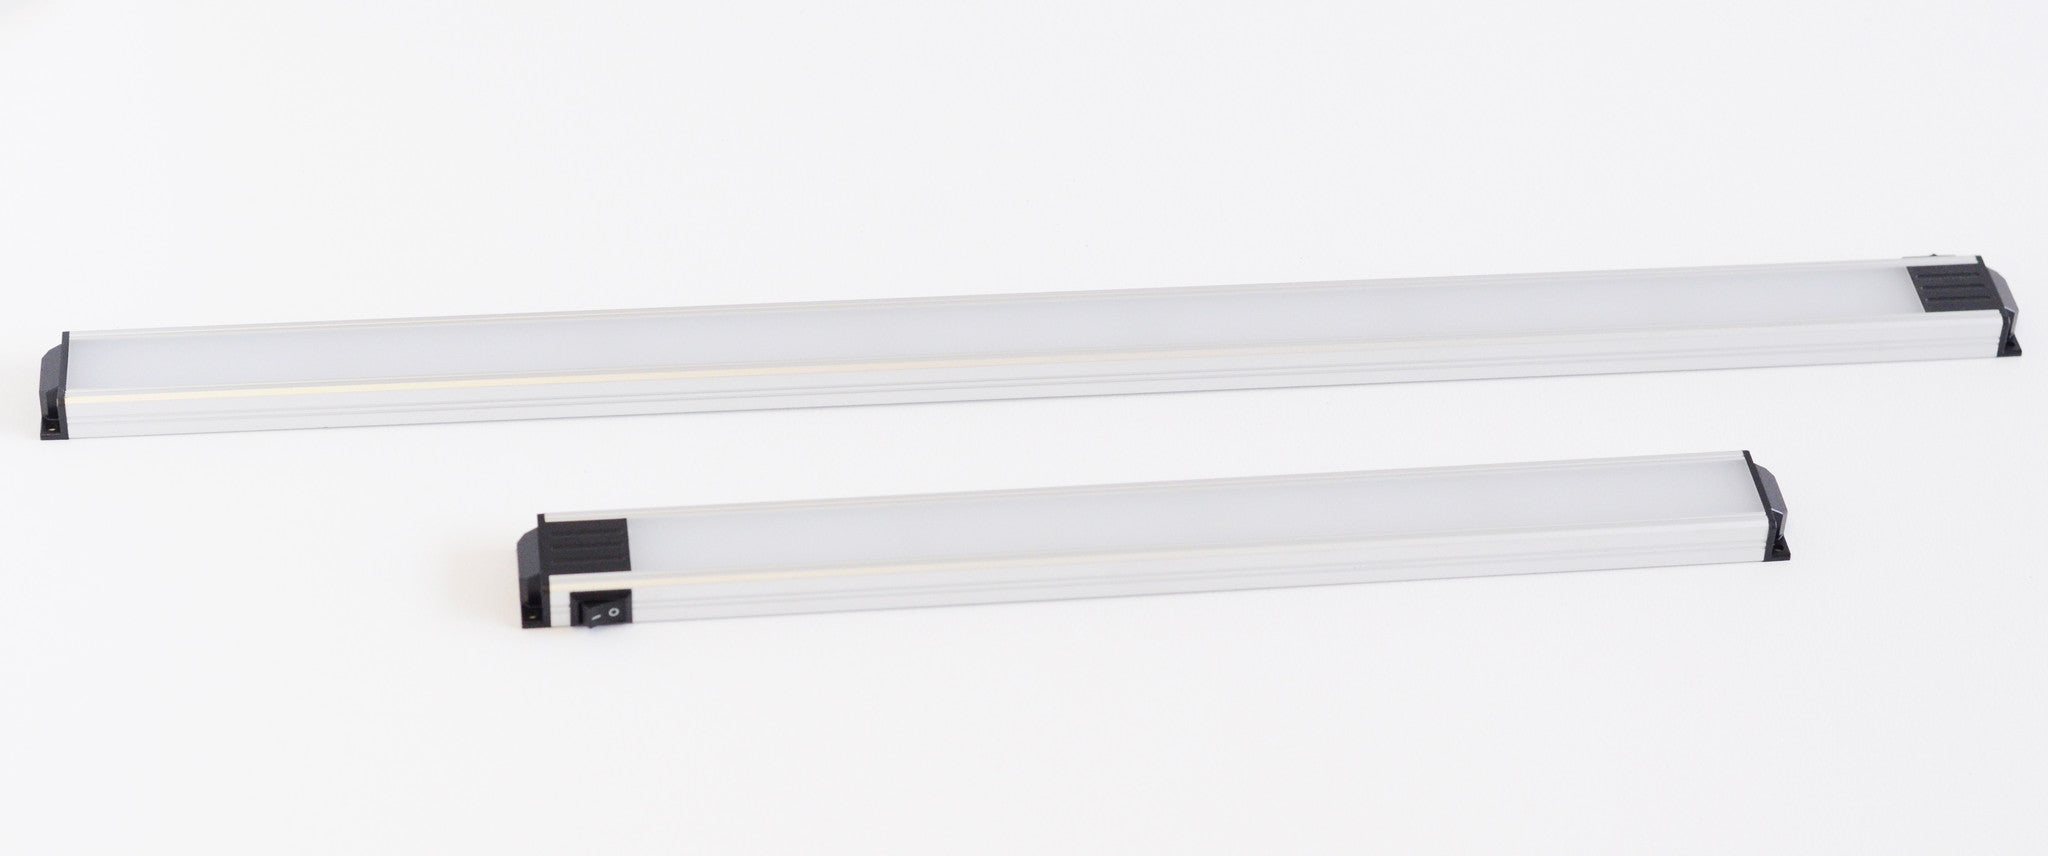 Techlight 12VDC Aluminium LED Strips with Switch - BNR Industrial